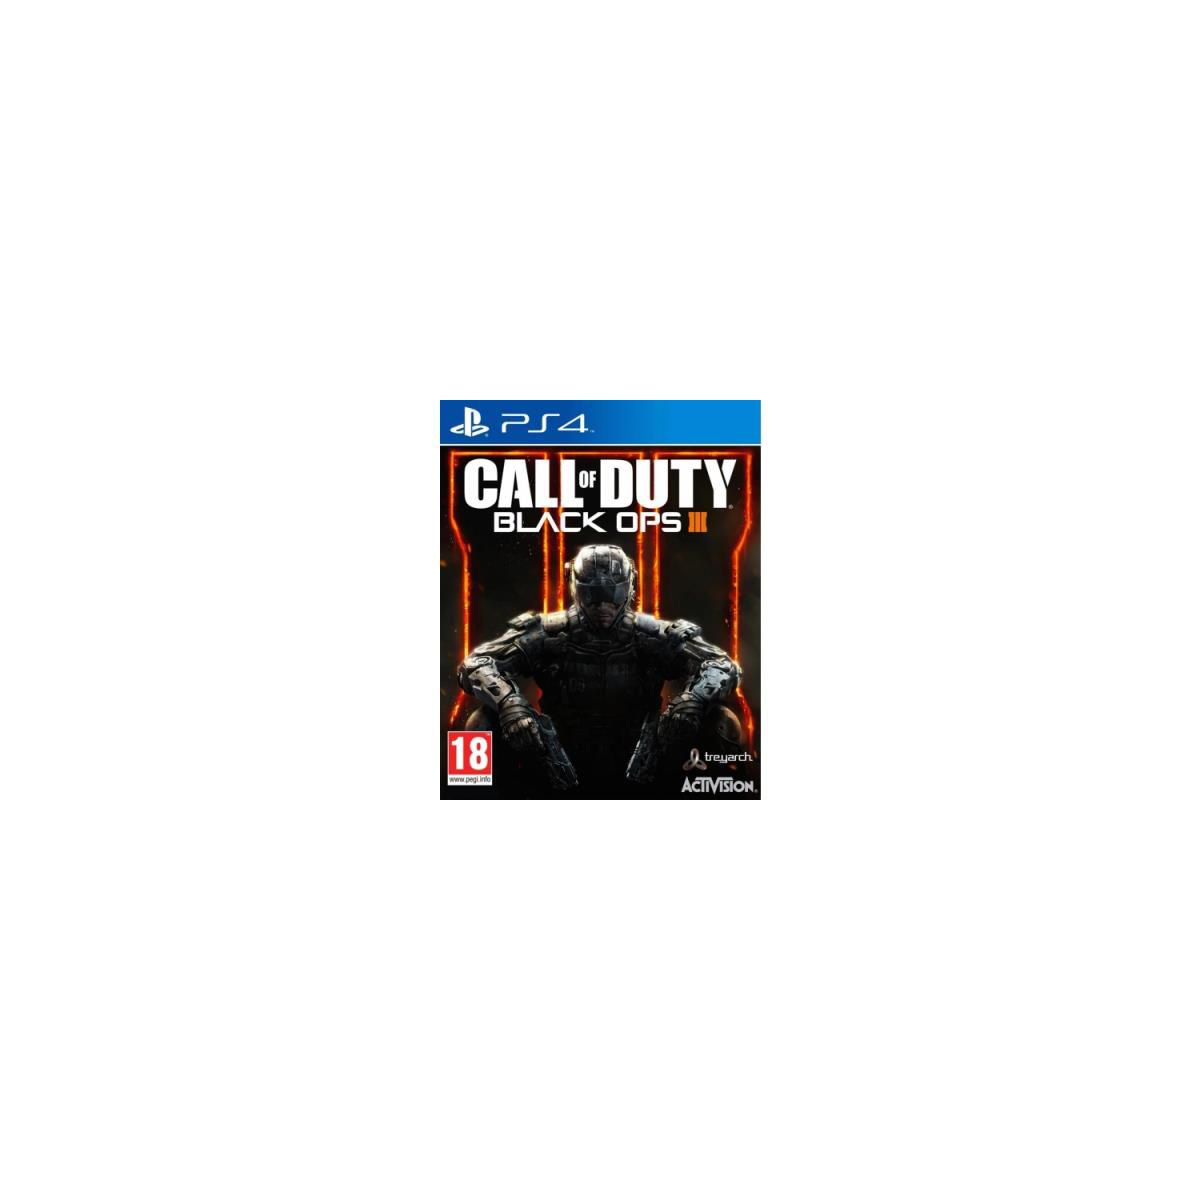 Jeu PS4 ACTIVISION Call Of Duty Black Ops 3 (photo)